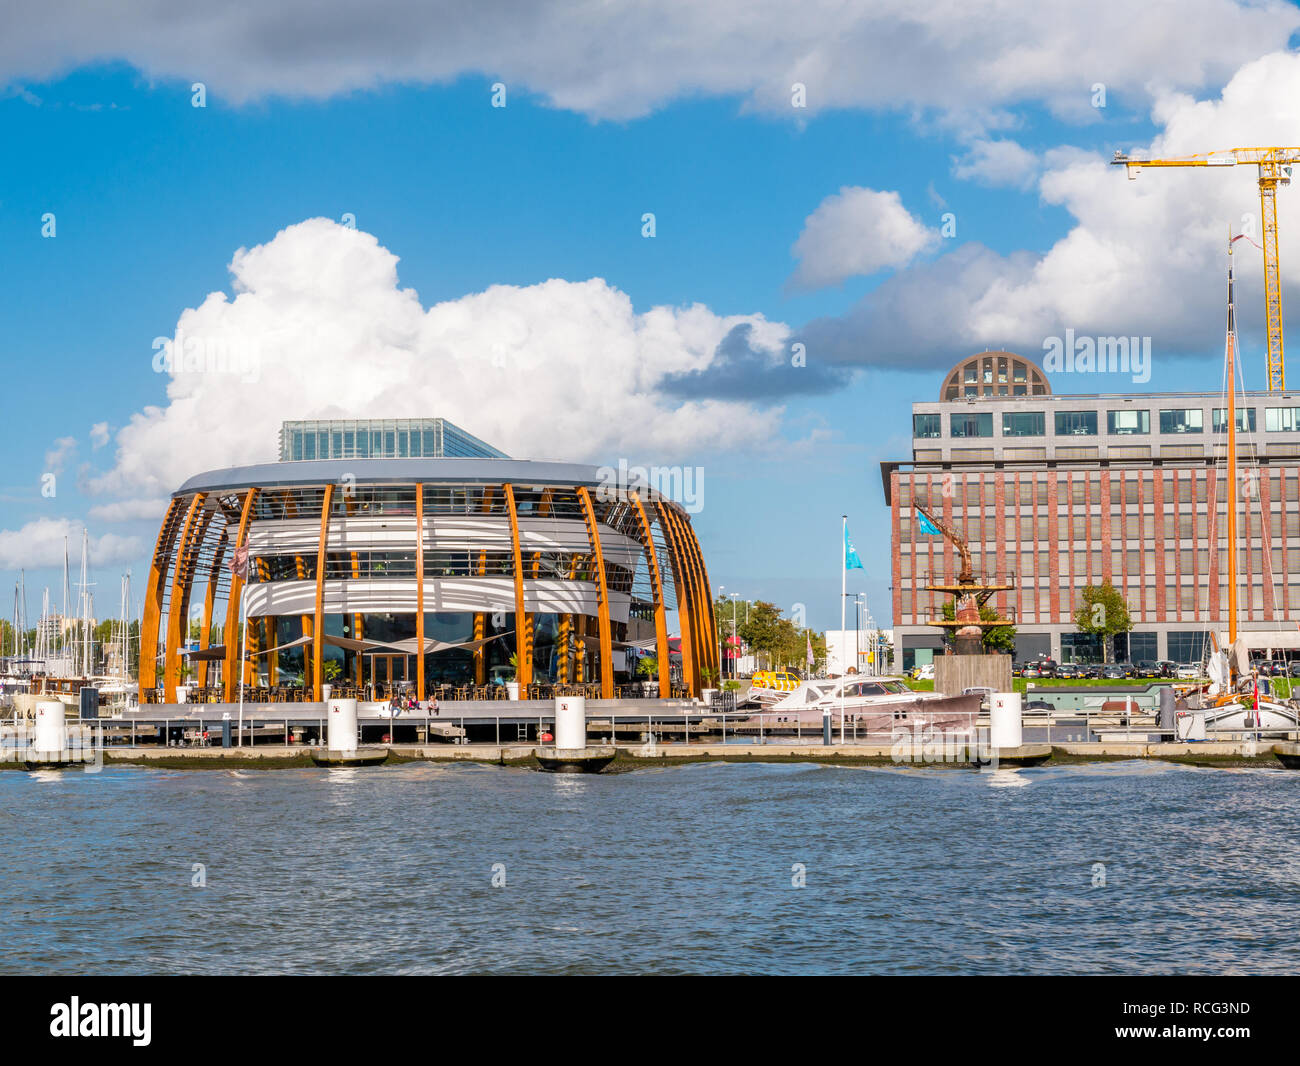 Amsterdam marina and NDSM wharf on northern bank of IJ river in Amsterdam, Netherlands - Stock Image